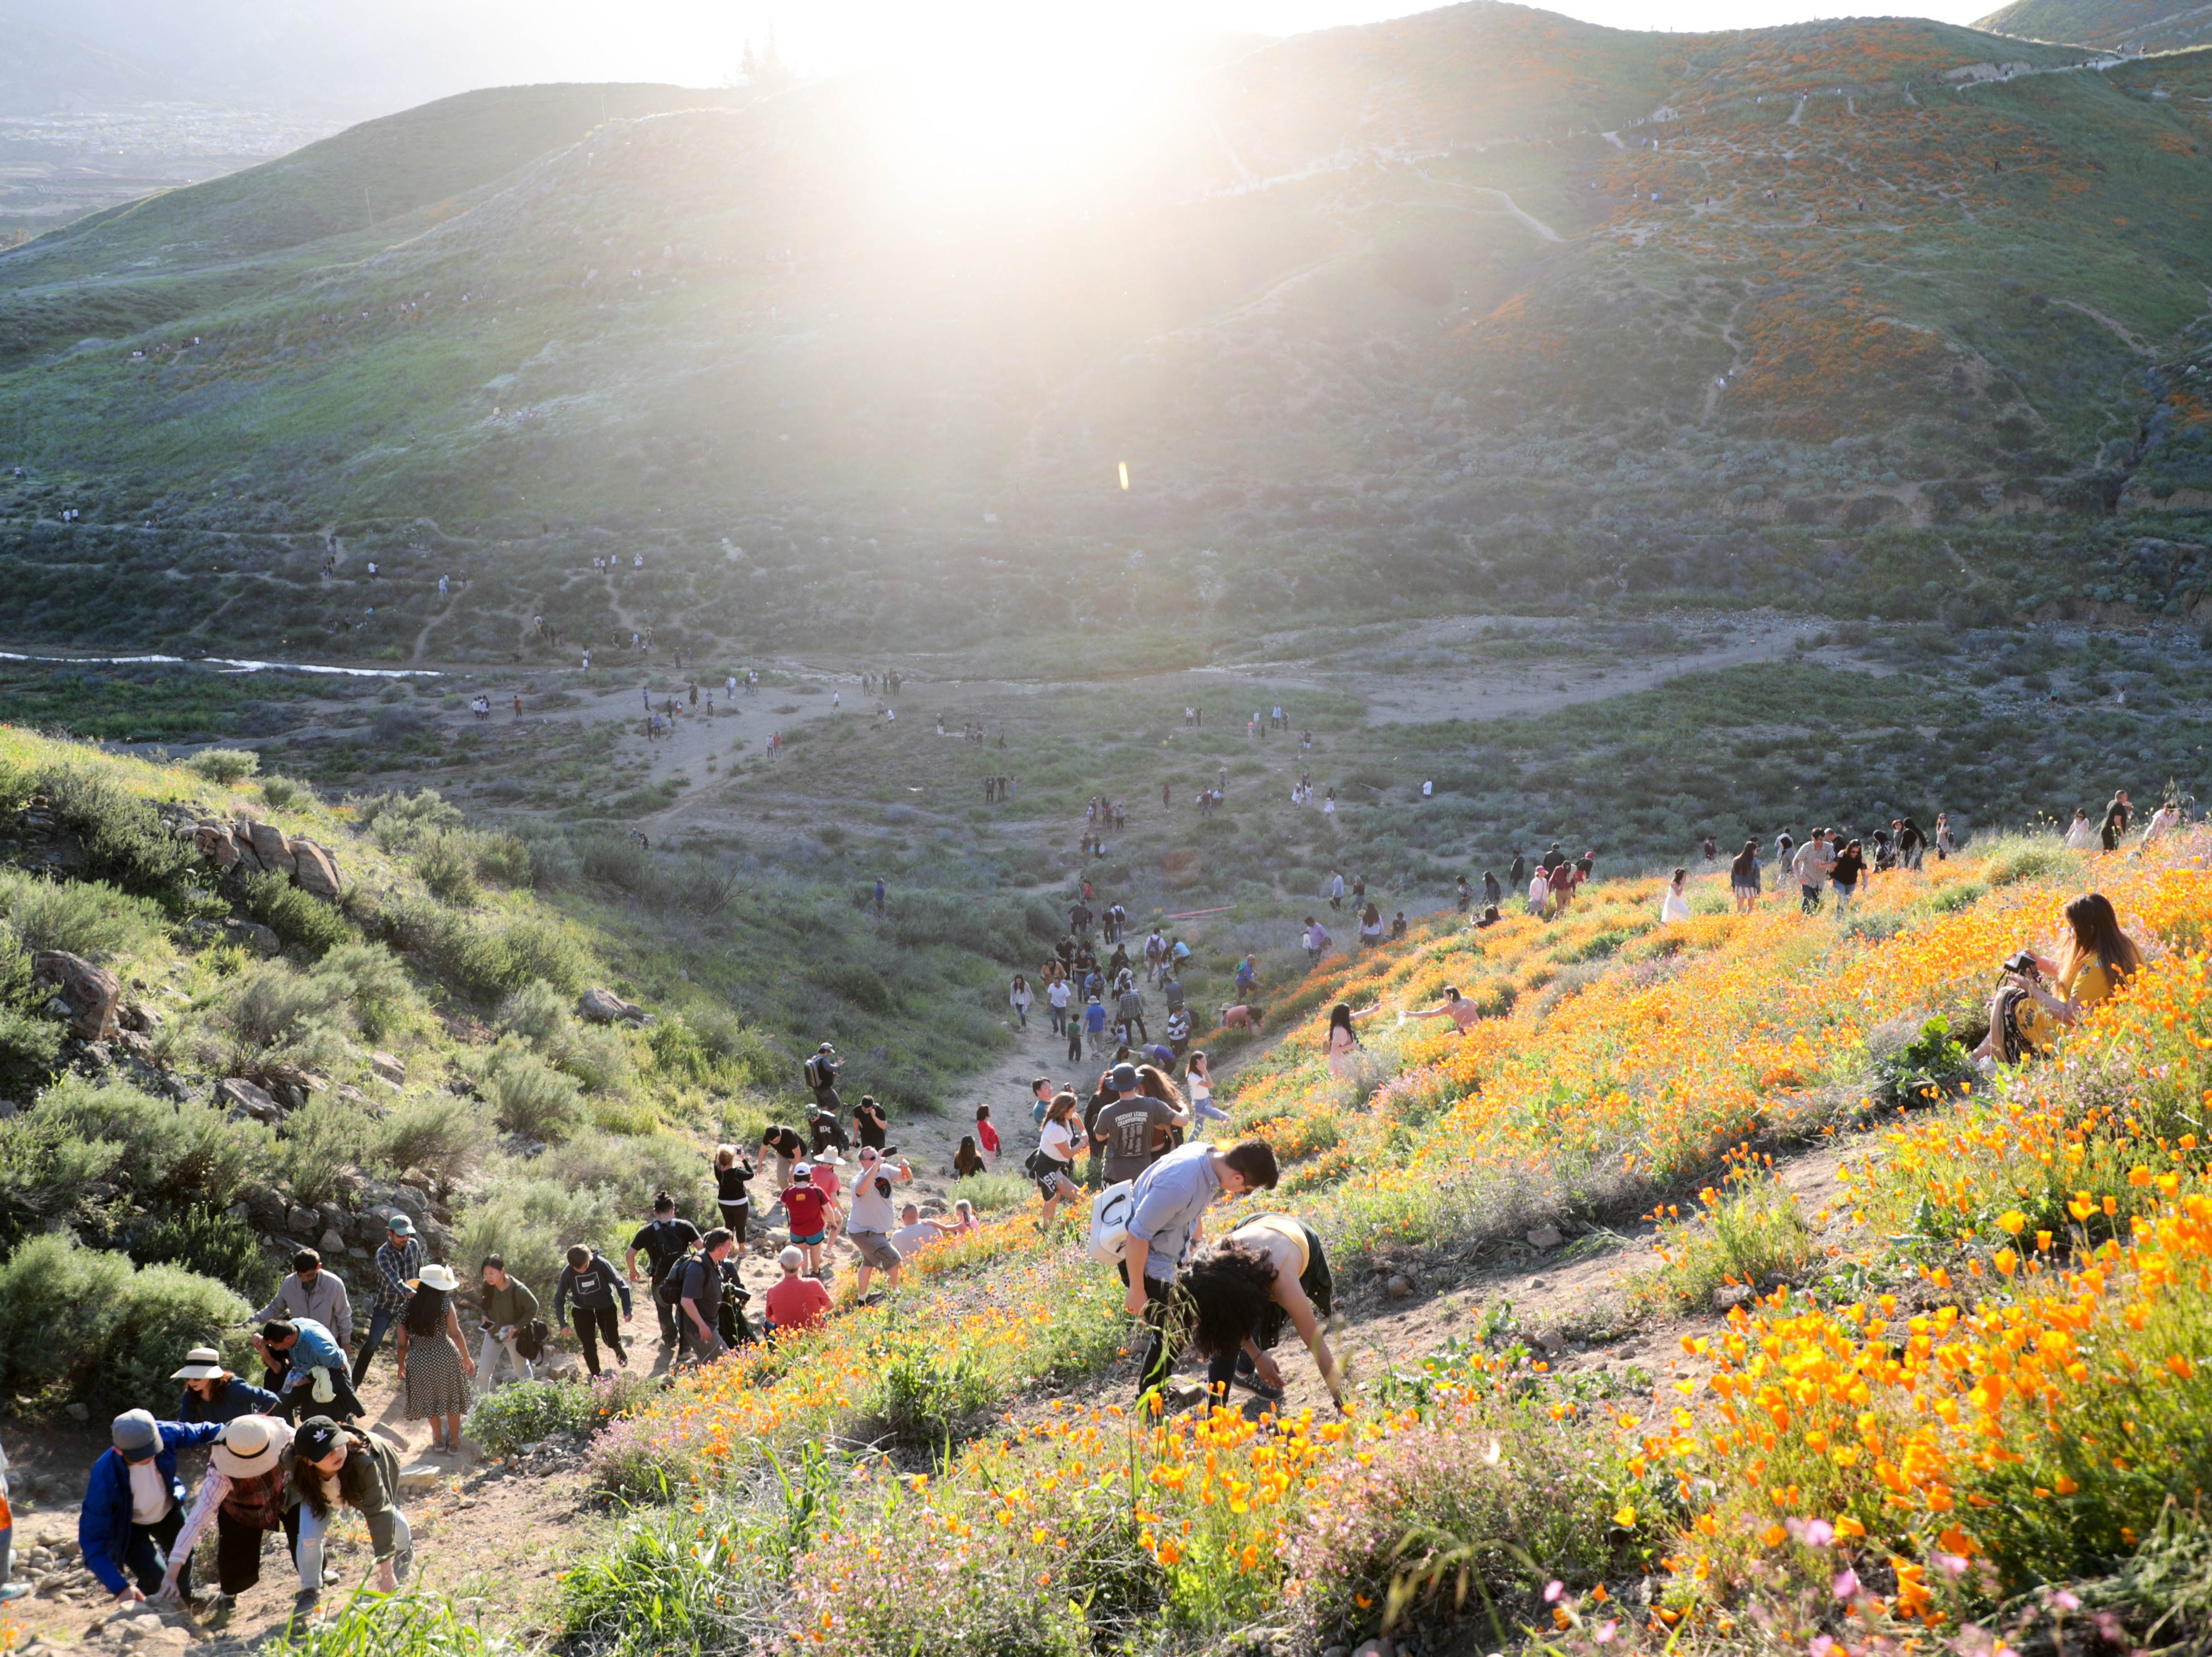 Crowds walk on Walker Canyon in Lake Elsinore, Calif. to view the poppy fields on Saturday, March 16, 2019.